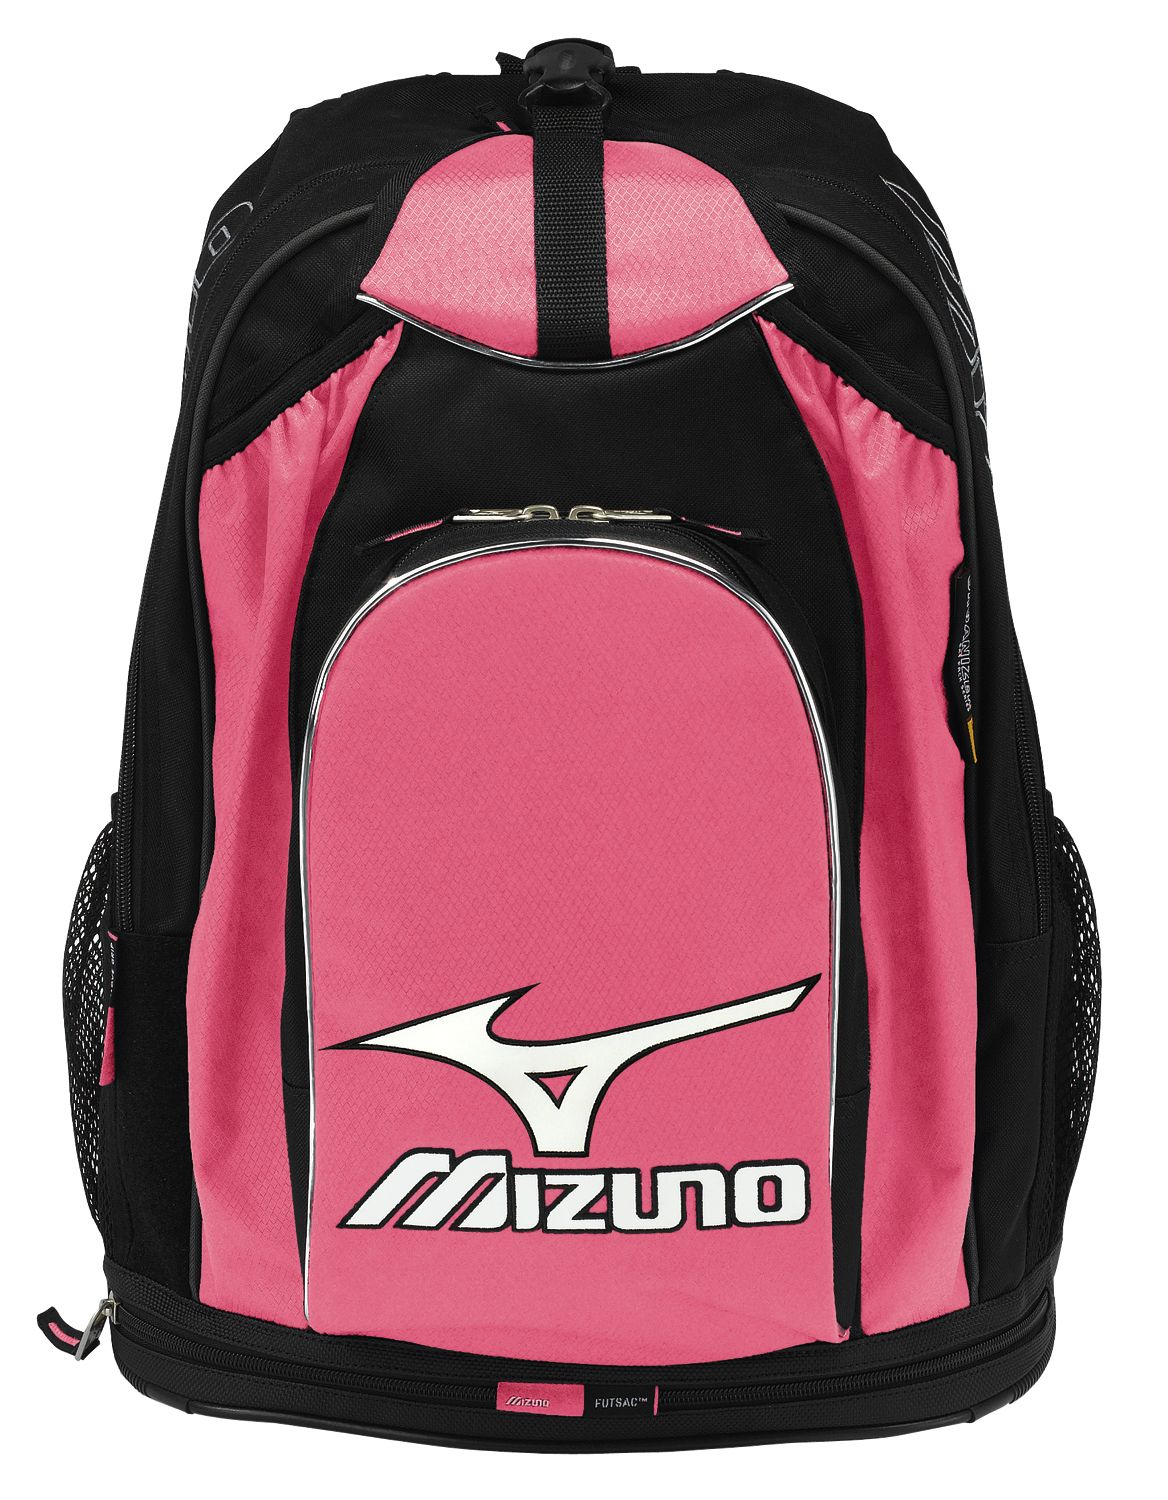 Mizuno Volleyball Backpack Mizuno Volleyball Volleyball Gear Swimming Bag